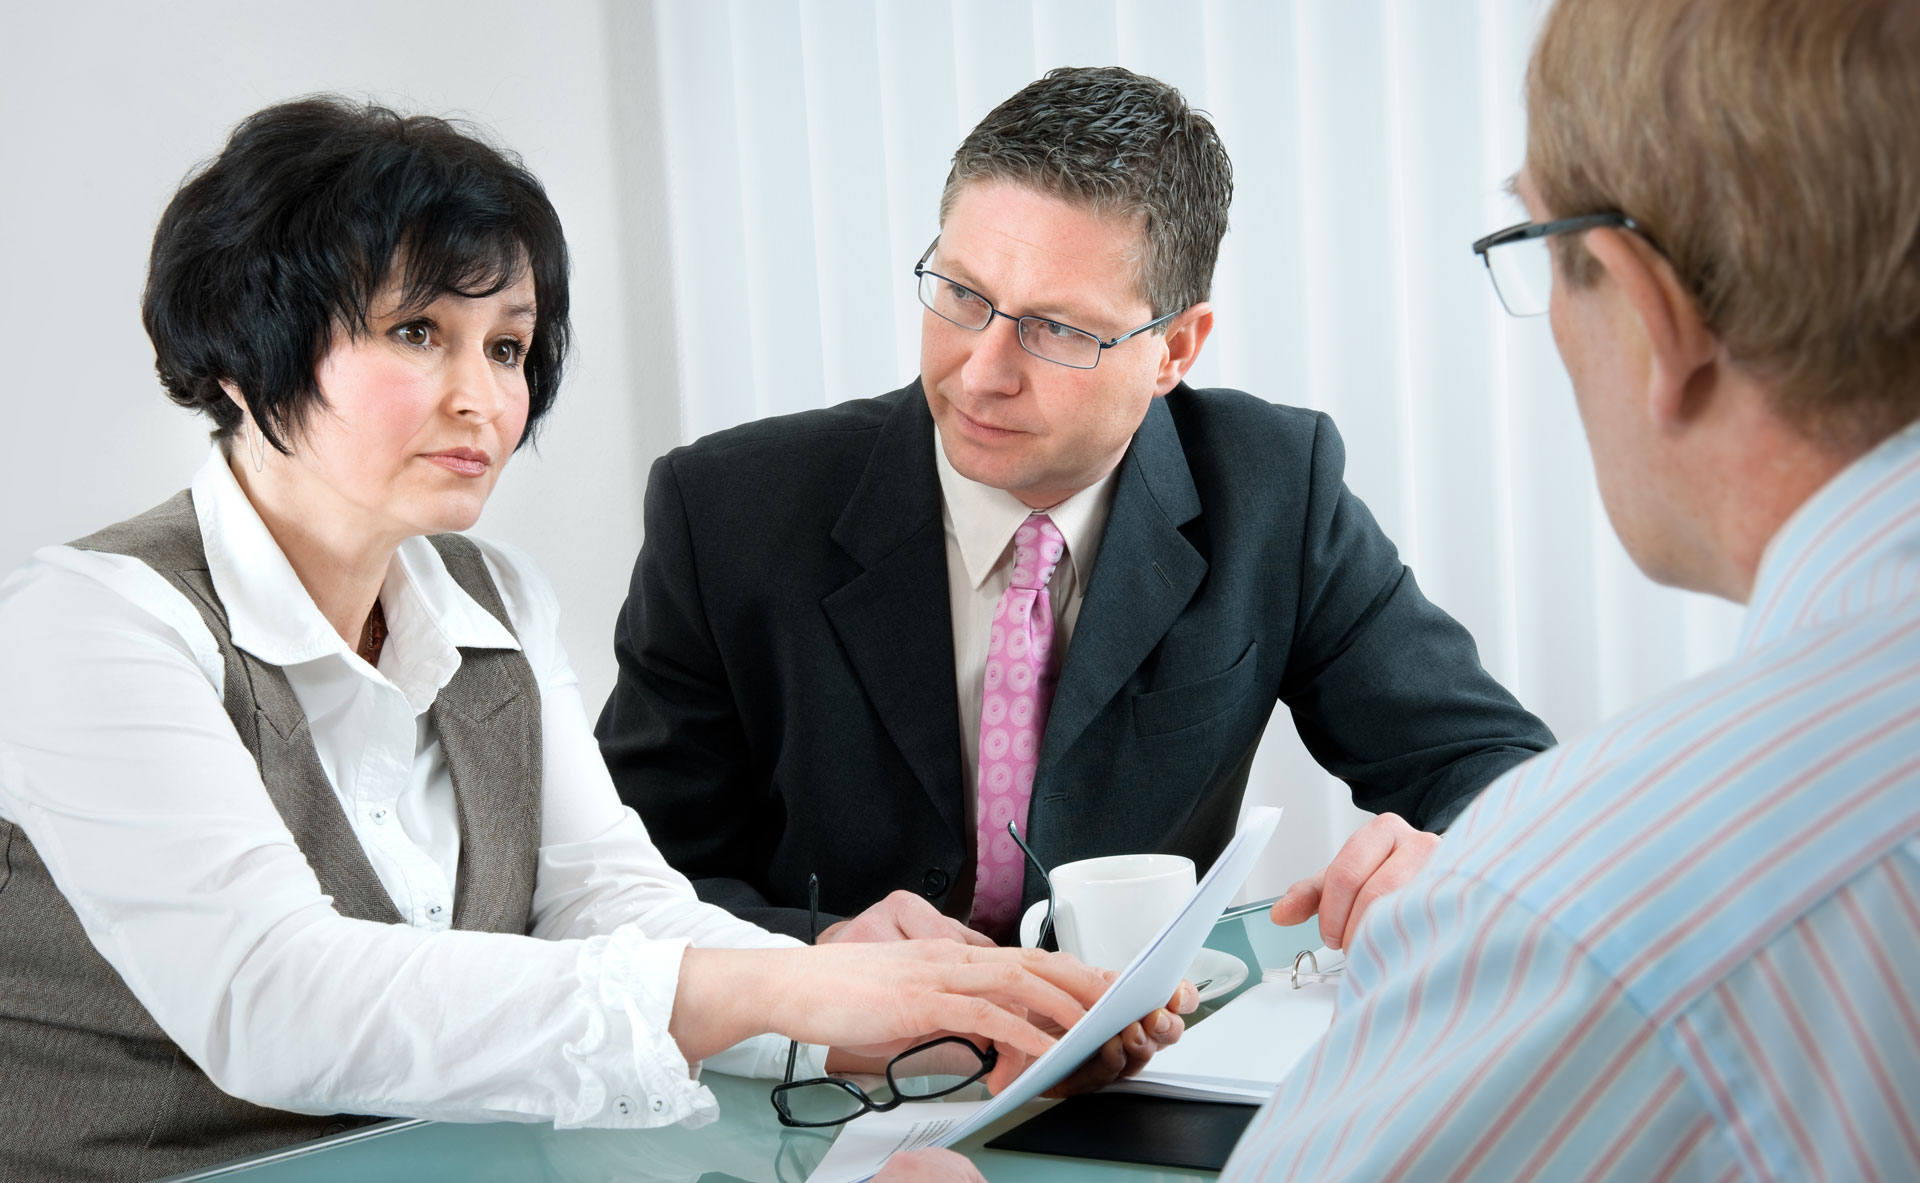 Family Law Practice, Family Arbitration